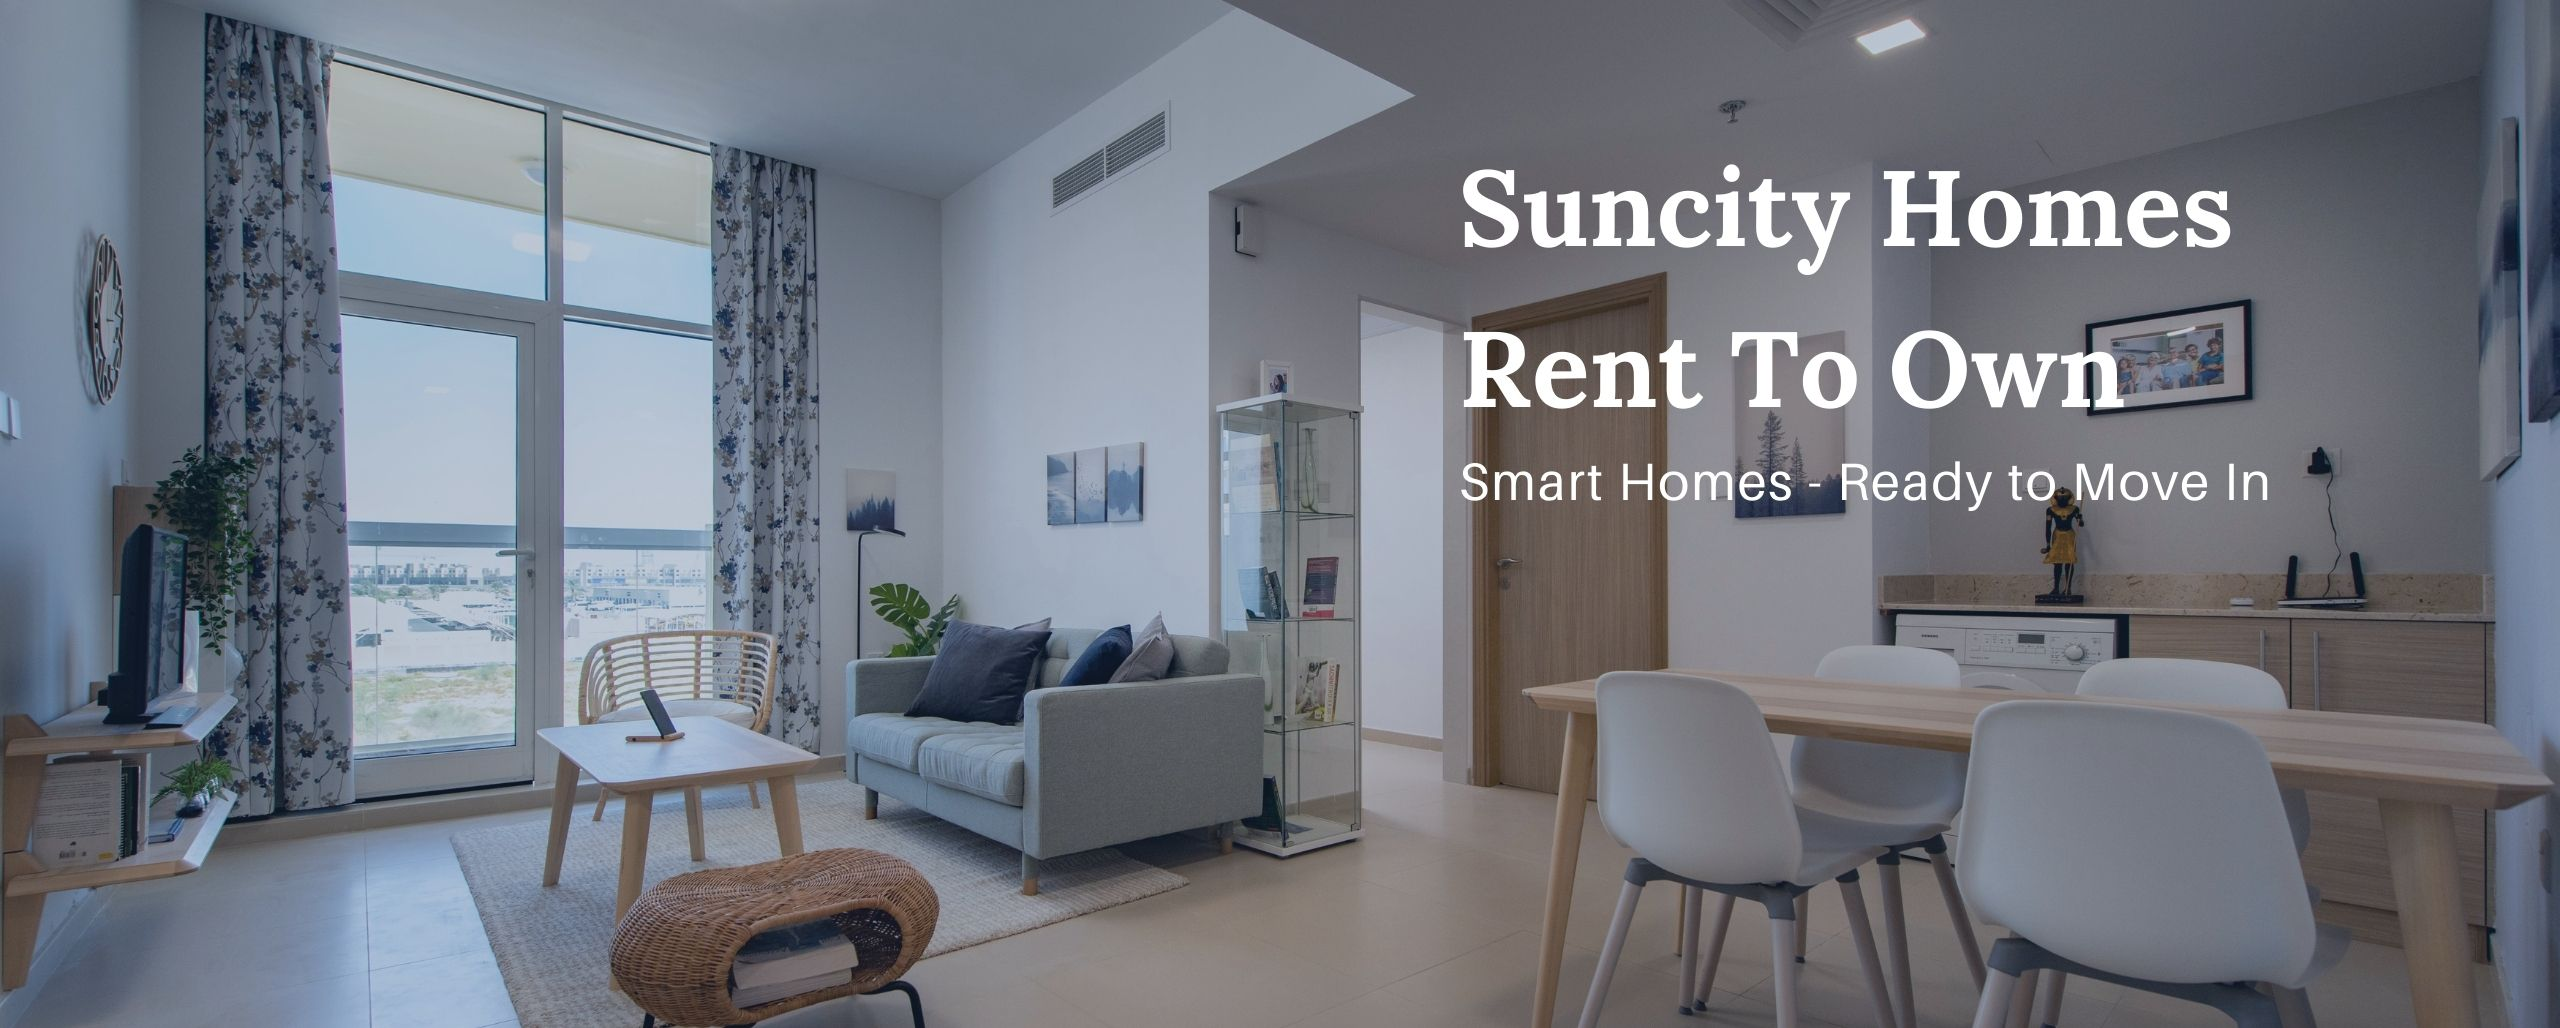 Suncity Homes Rent To Own Smart Homes